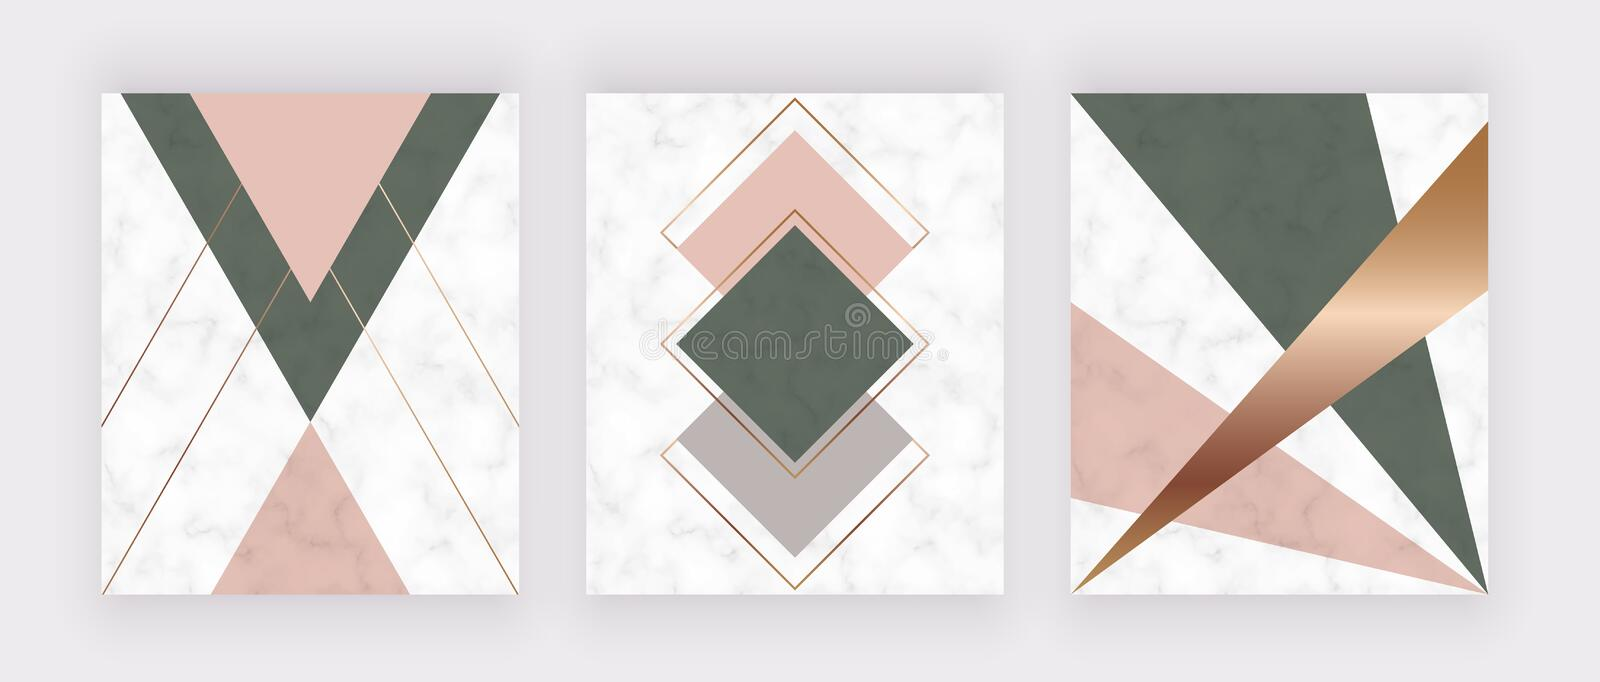 Modern geometric marble design with golden lines, pink and green triangles and hexagons shapes. Fashion background for banner, gra royalty free illustration